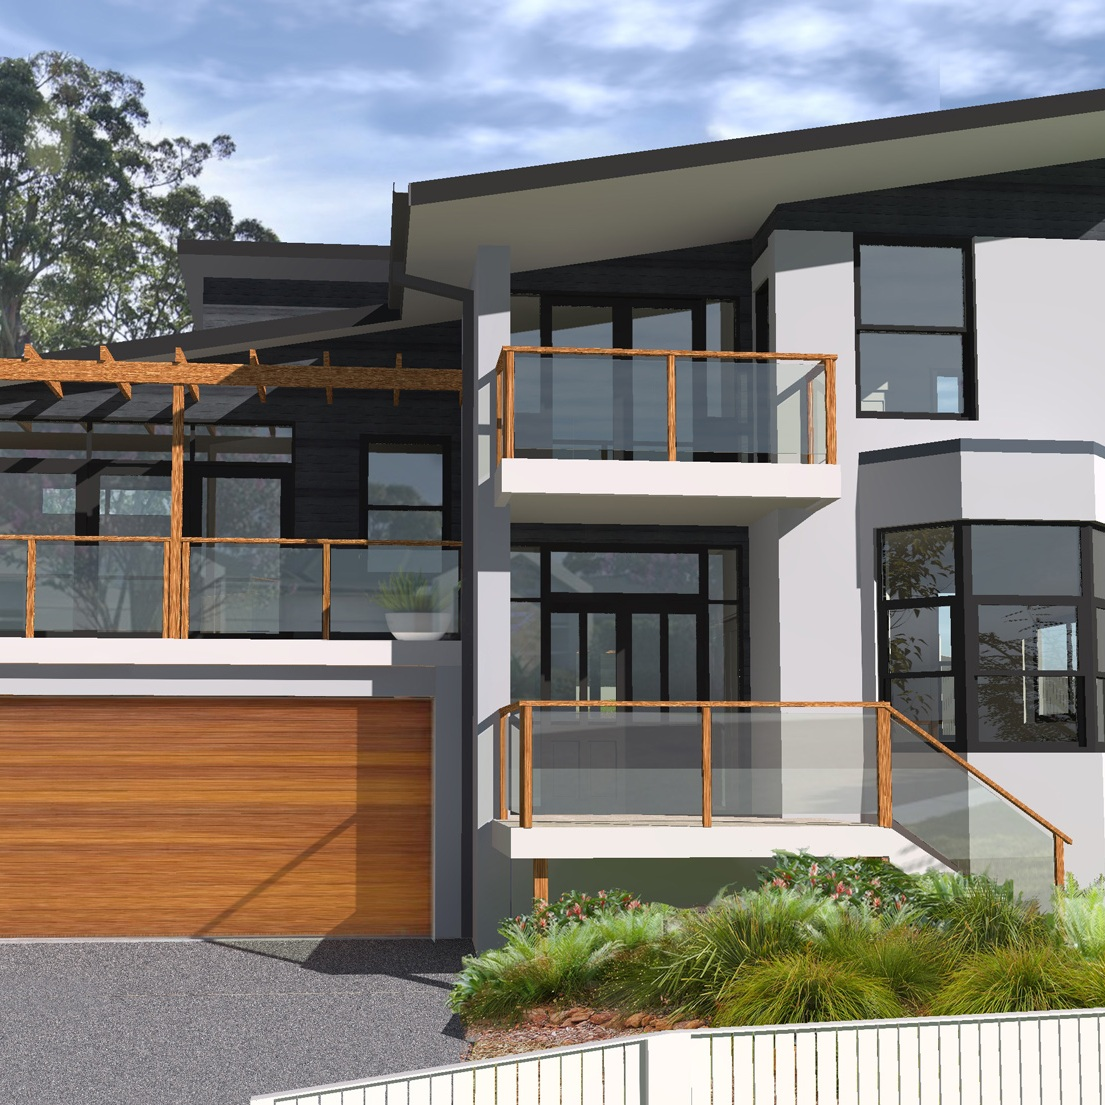 New Home & Granny Flat   This project is a new two storey residence and an additional granny flat on a narrow, sloping site with a southern aspect.